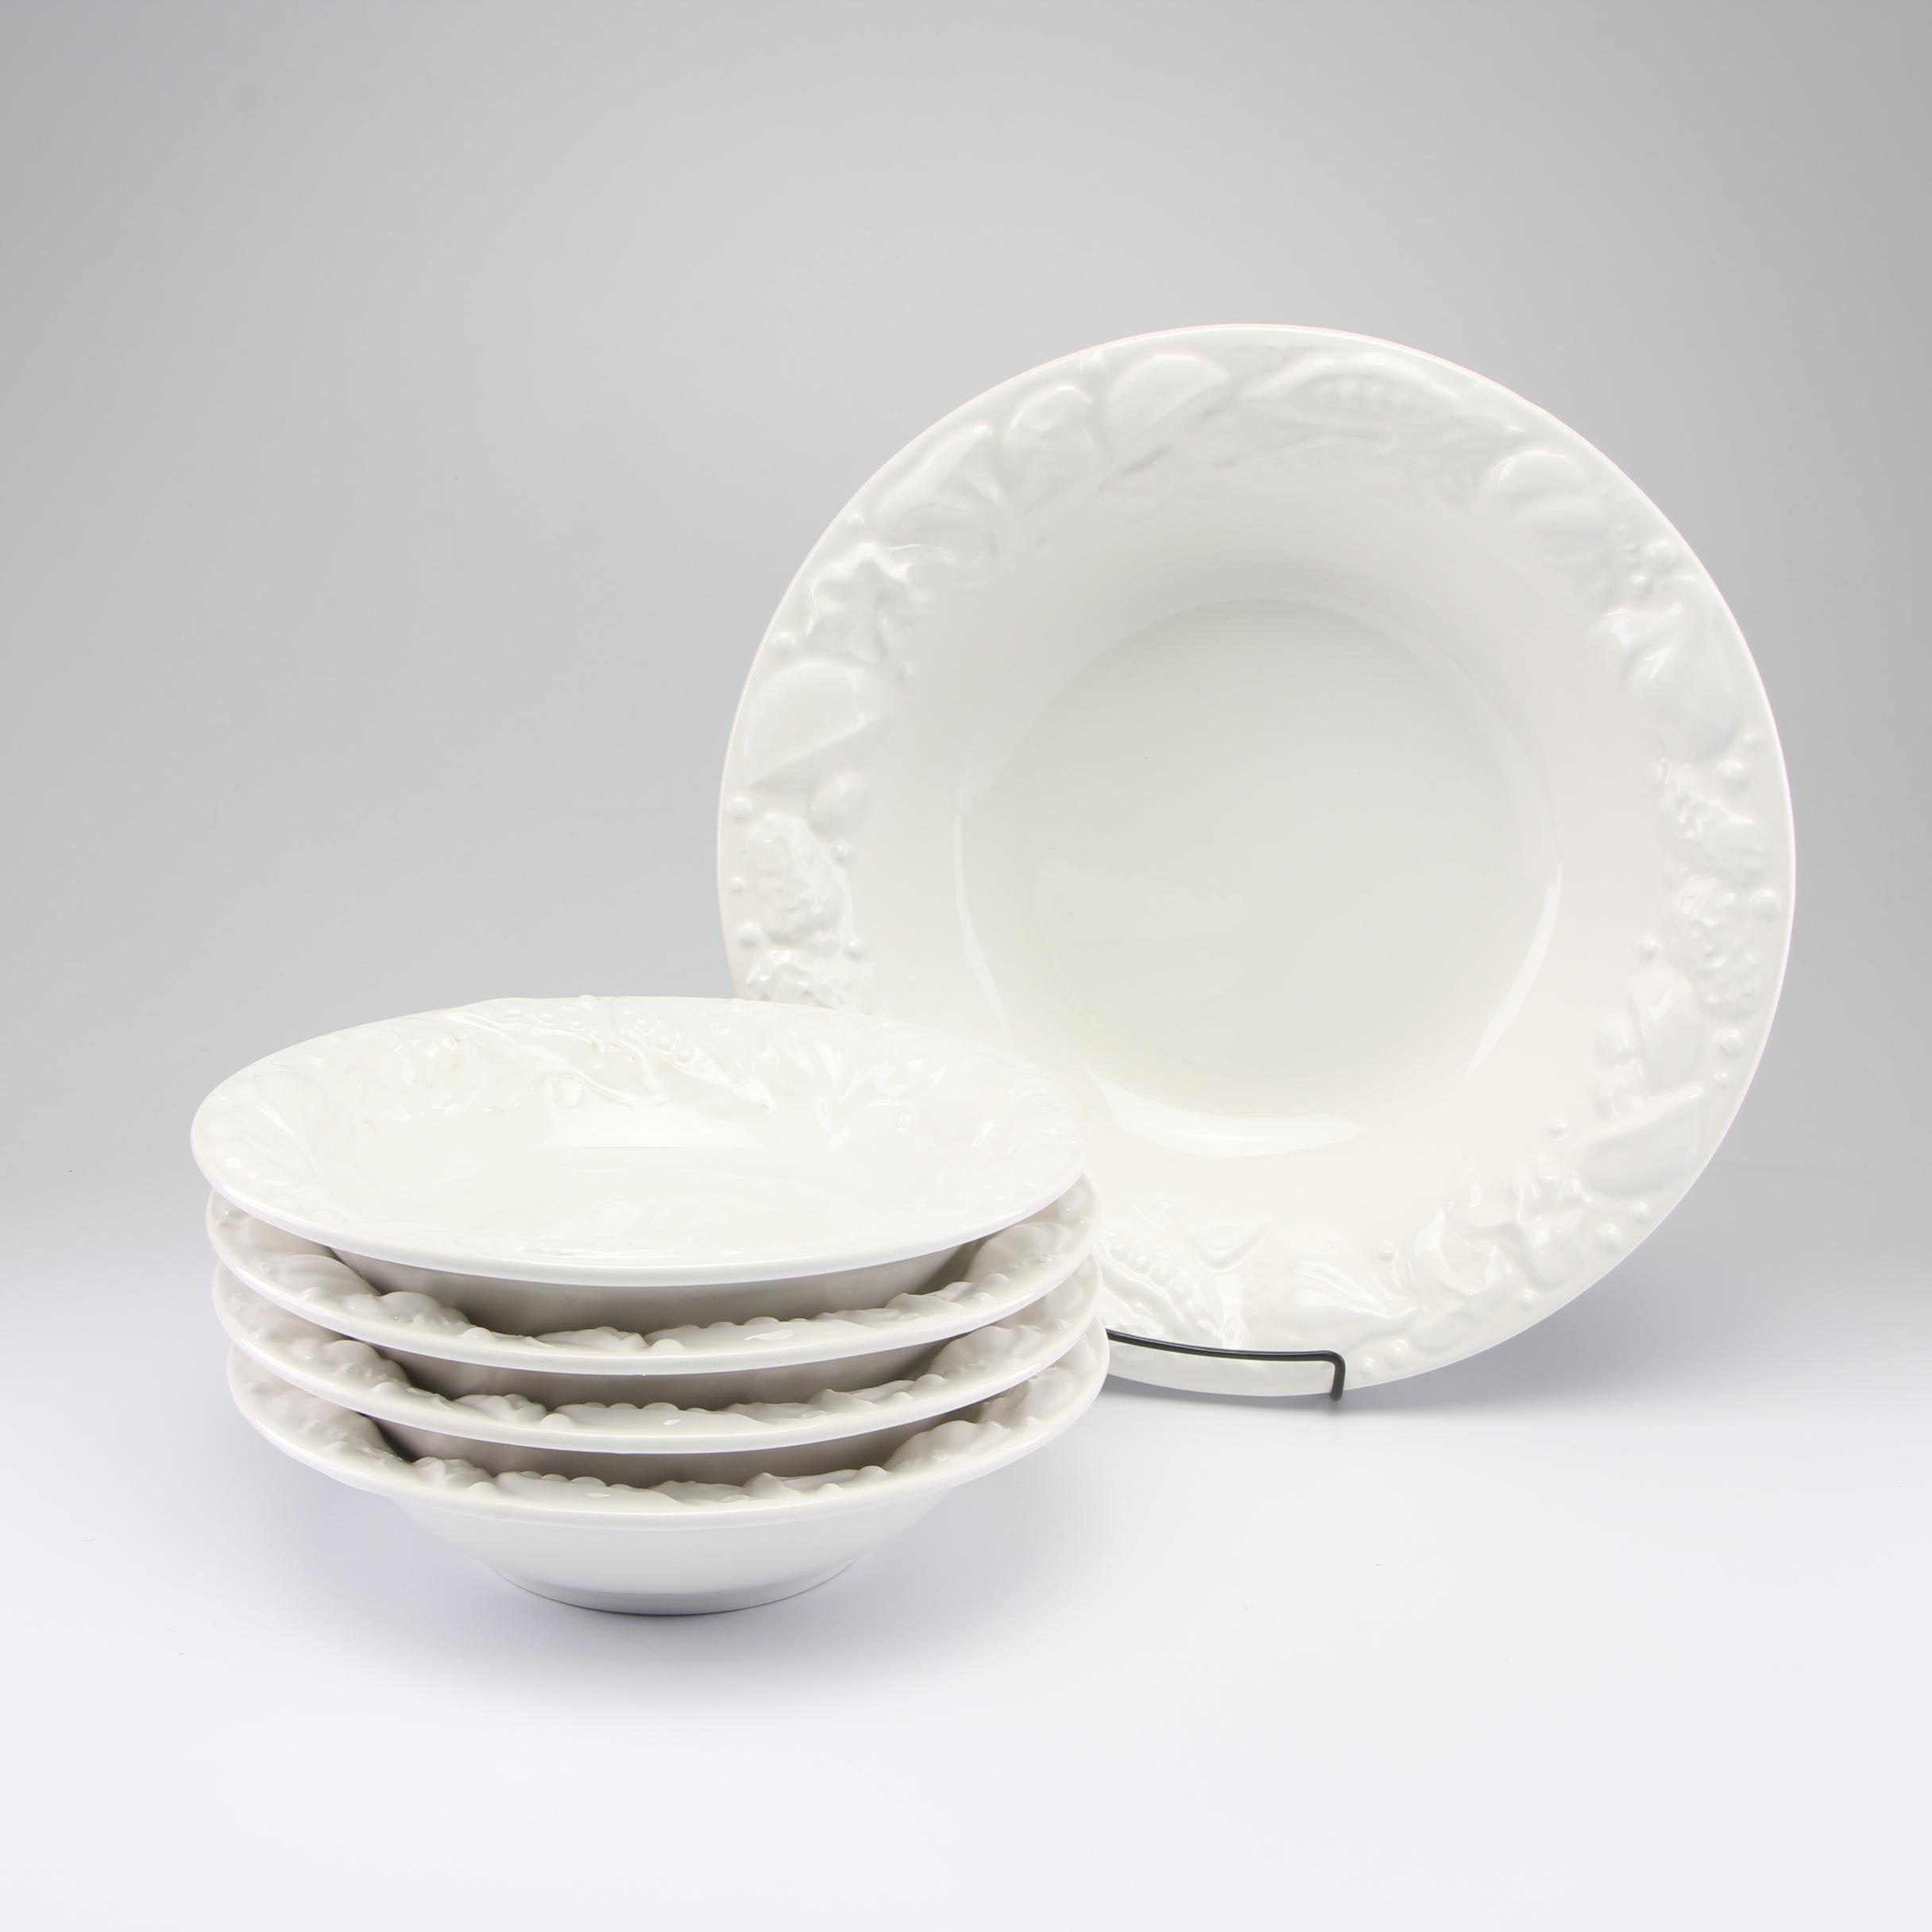 Pottery Barn Pasta Bowls with Garlic Embossed Rim